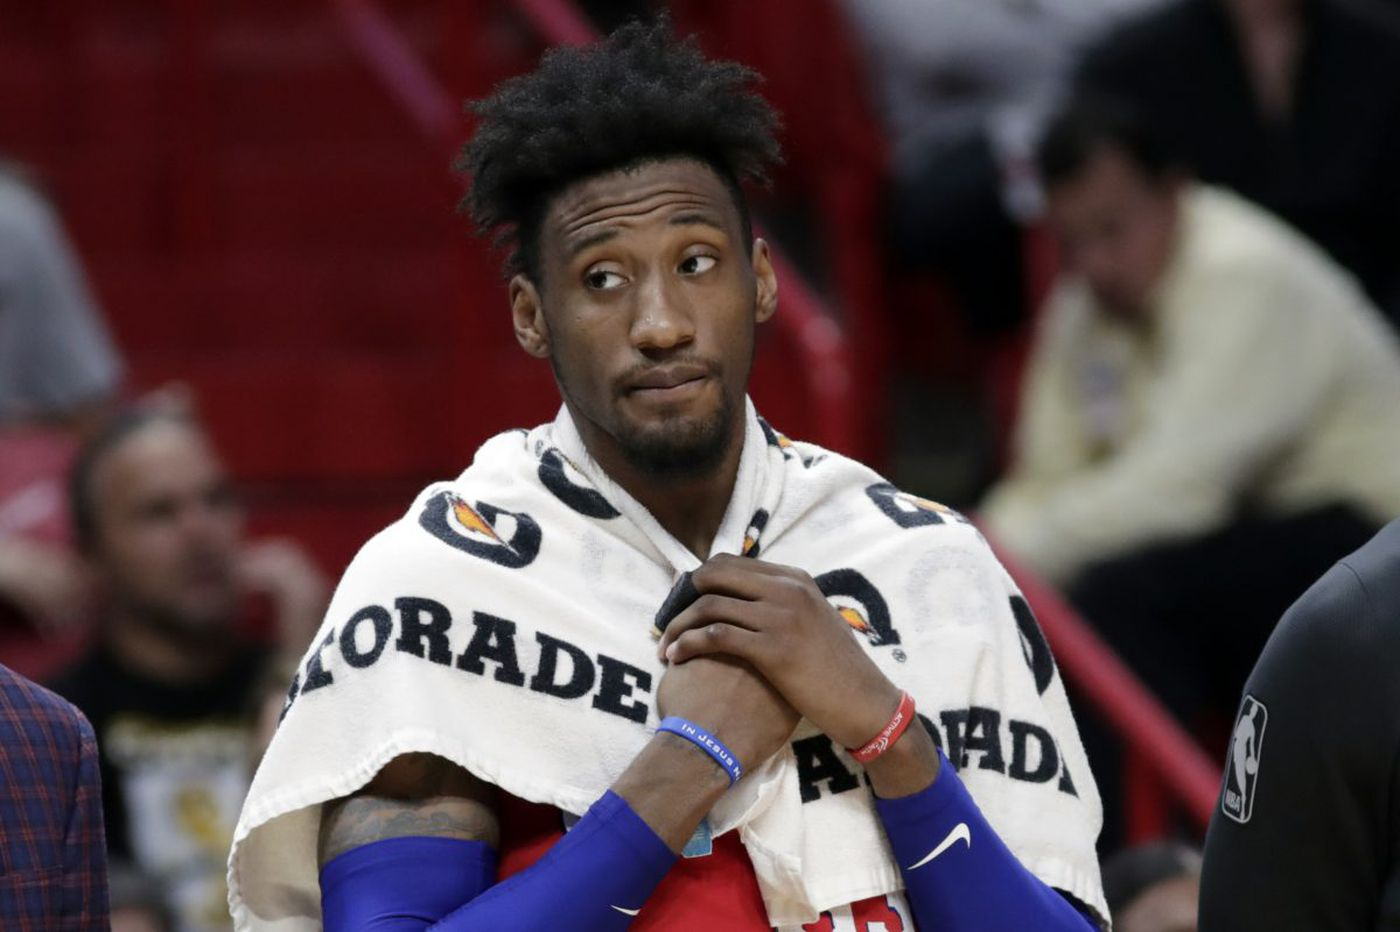 Sixers-Heat observations, 'best' and 'worst' awards: Joel Embiid's struggles, Ben Simmons' disappearance